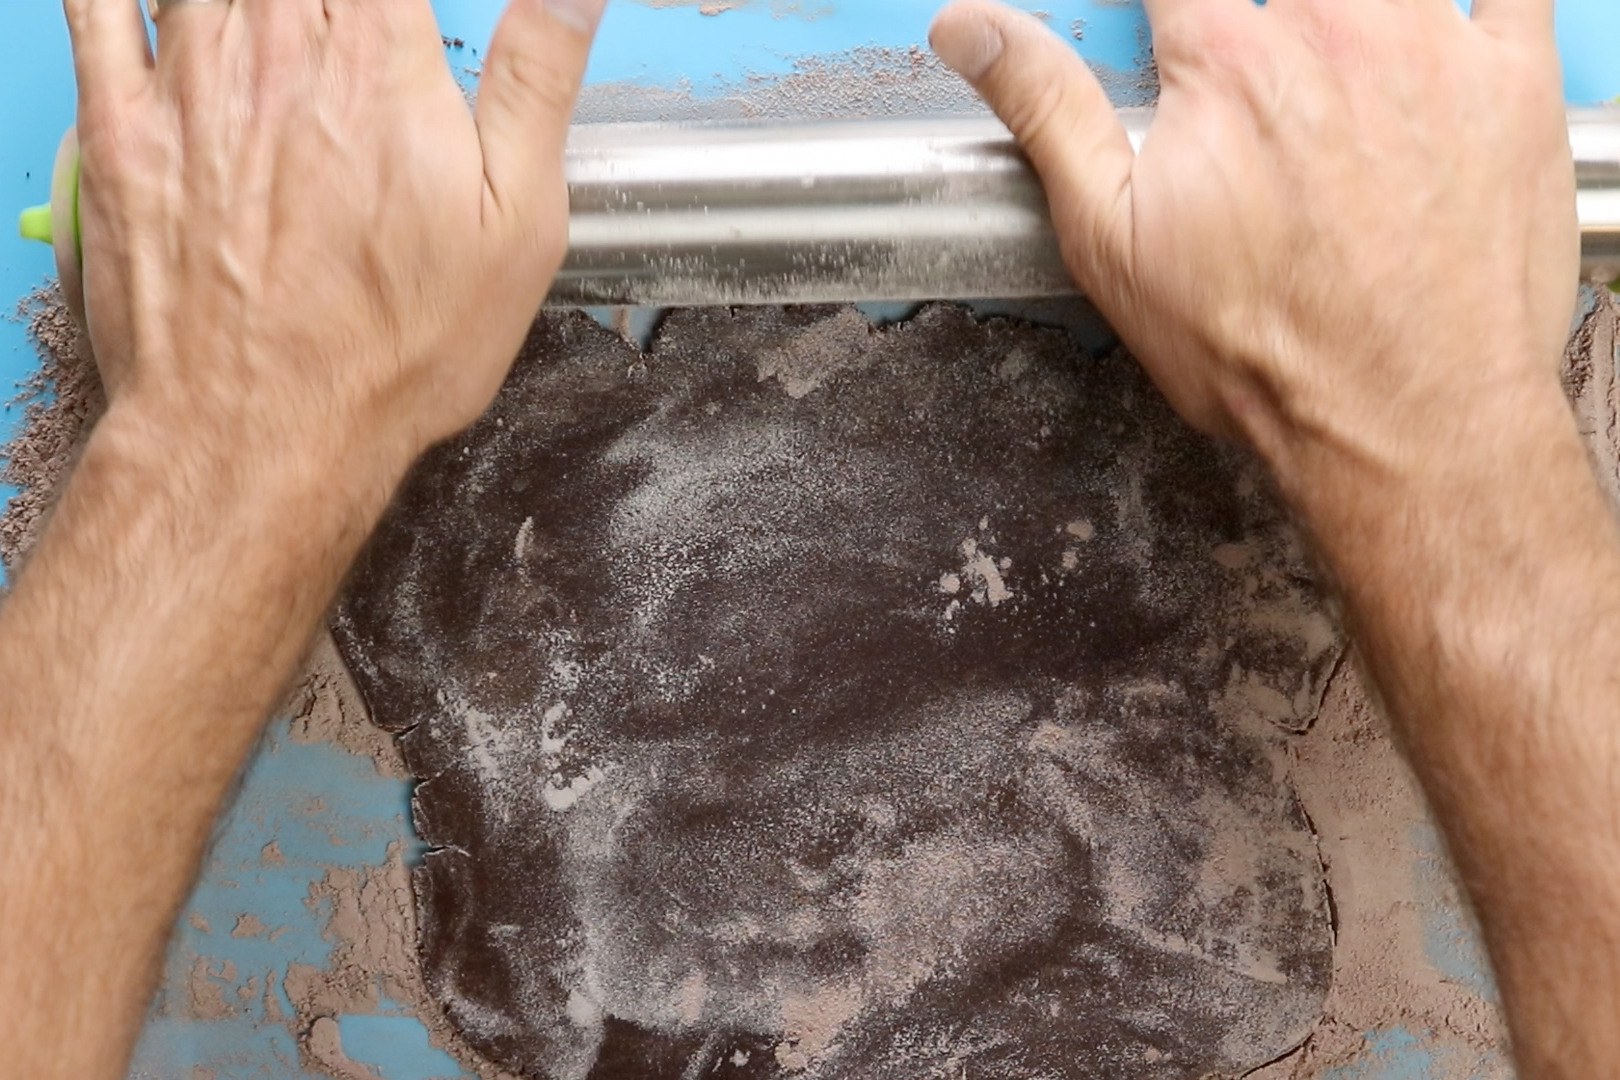 7. Roll out the dough until ¼-inch thick using an equal mix of flour and cocoa powder to keep from sticking. -